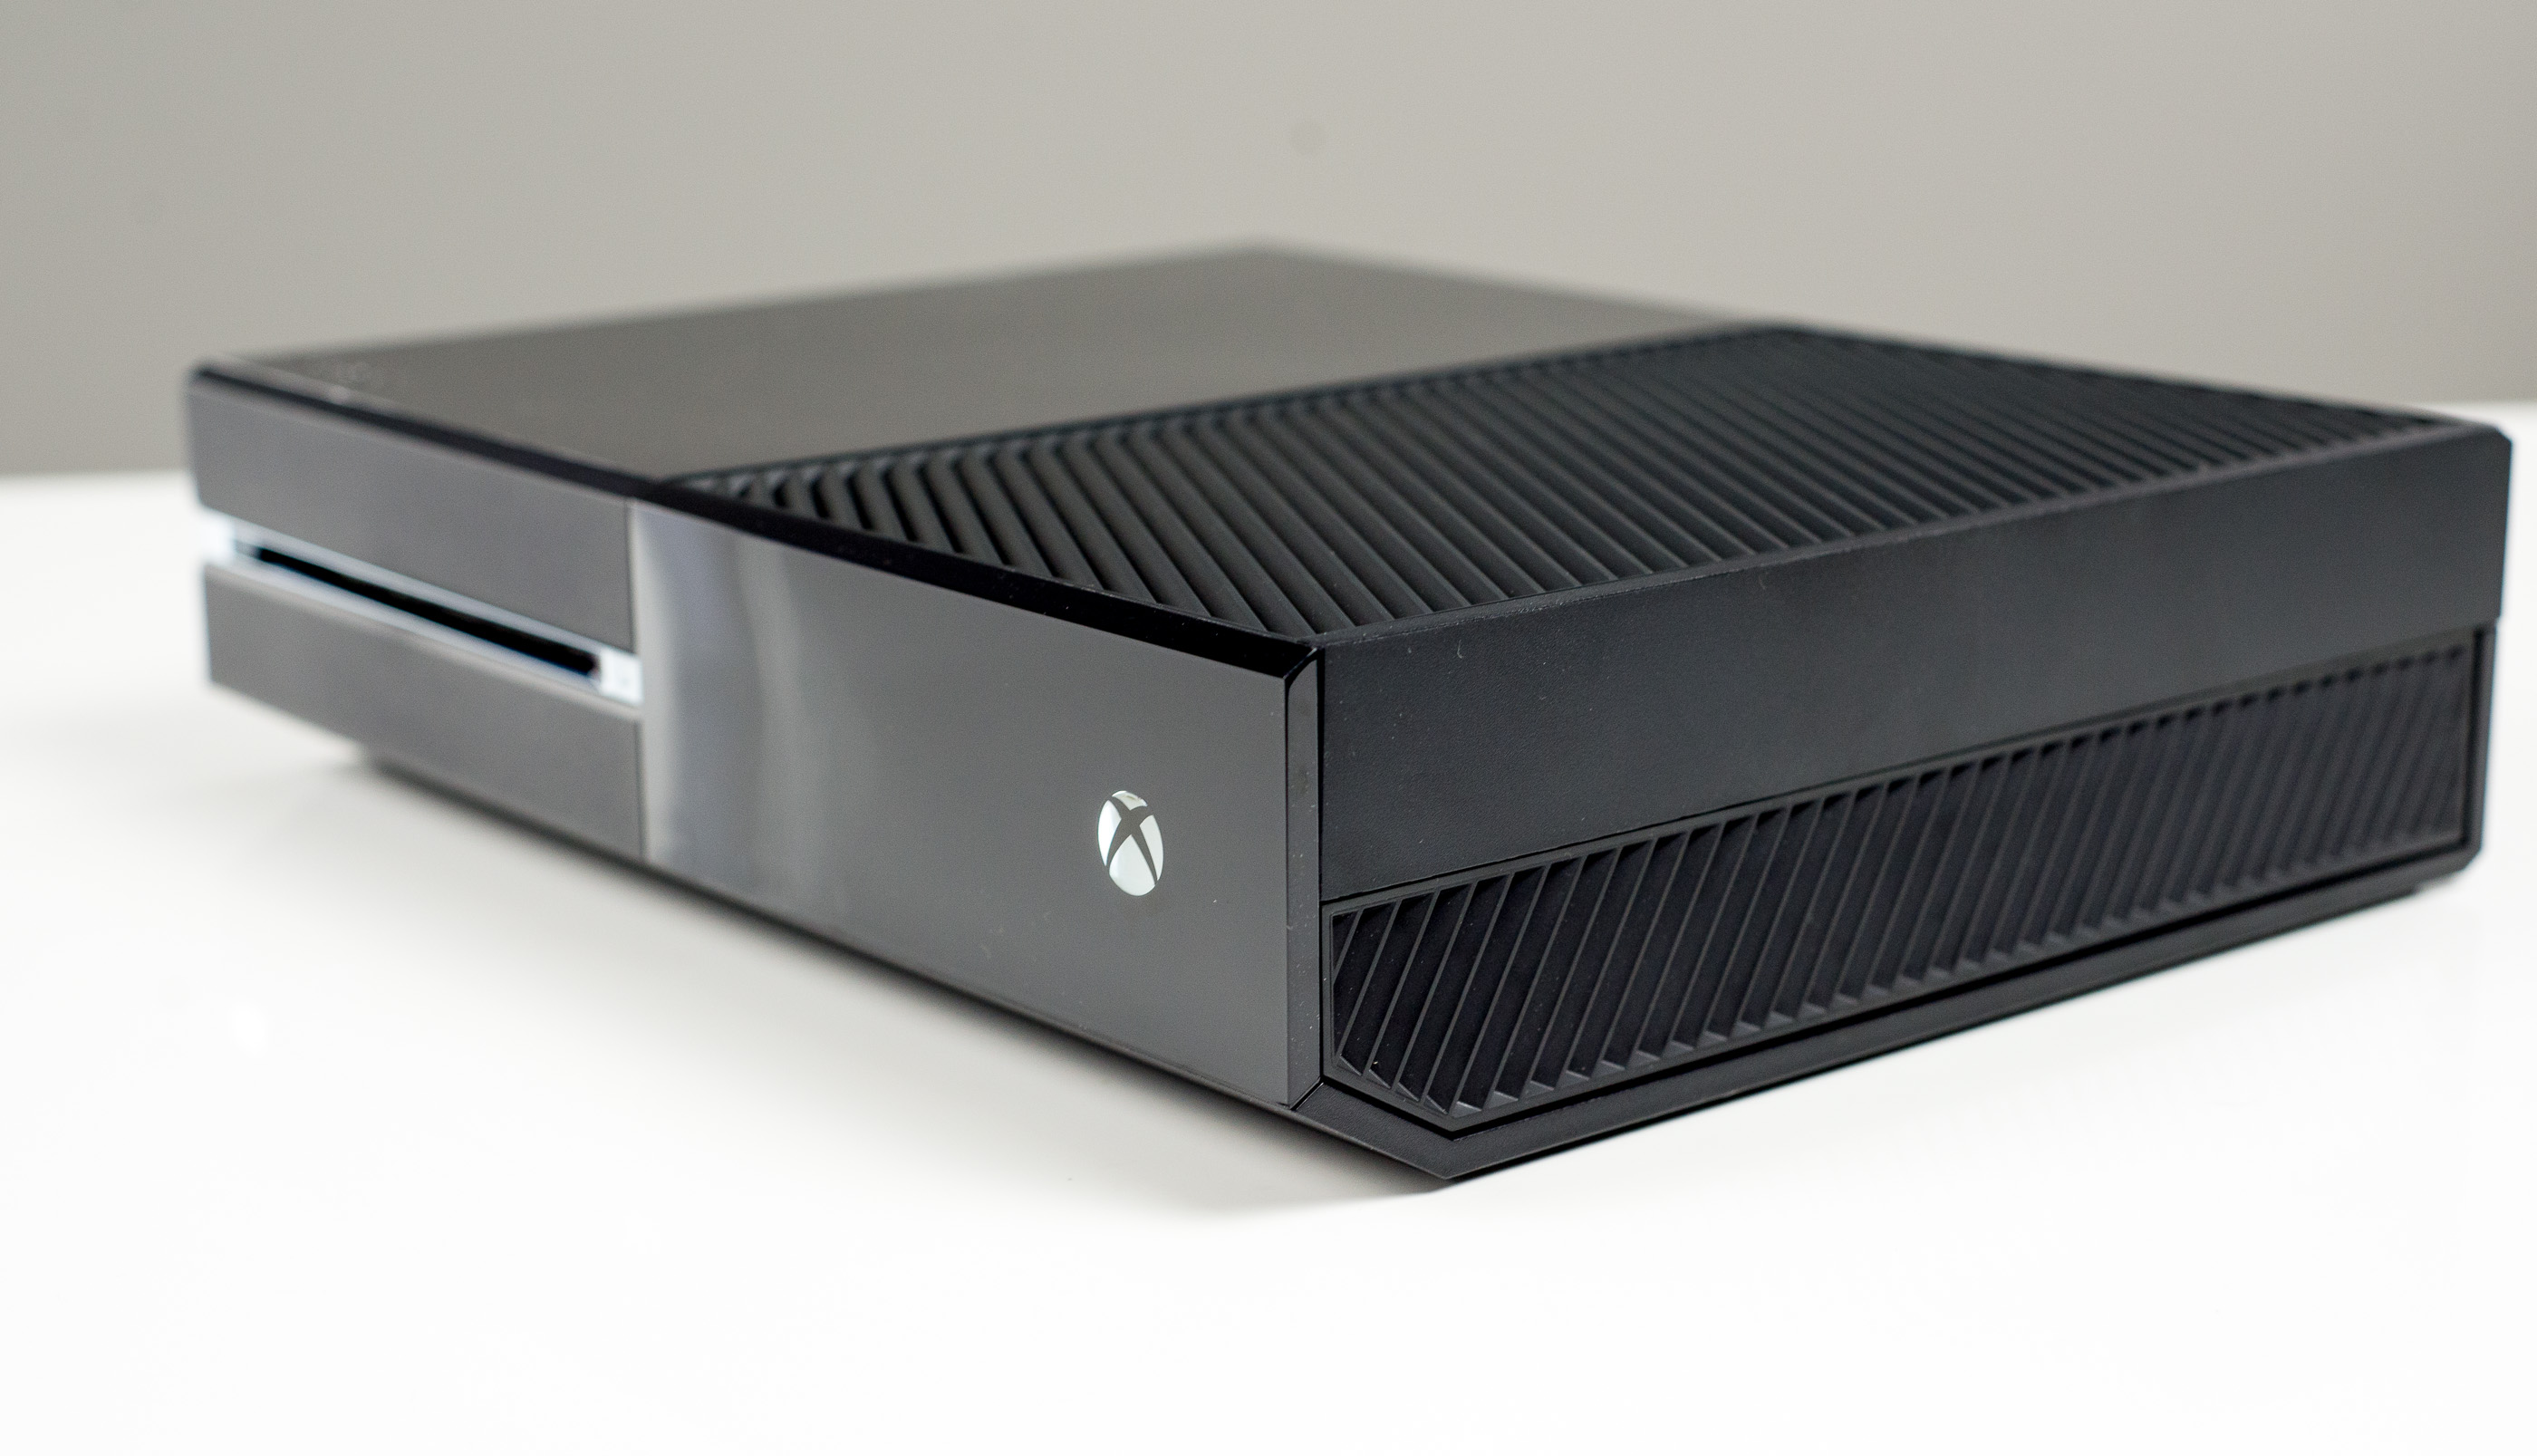 The Xbox One X Review: Putting A Spotlight On Gaming